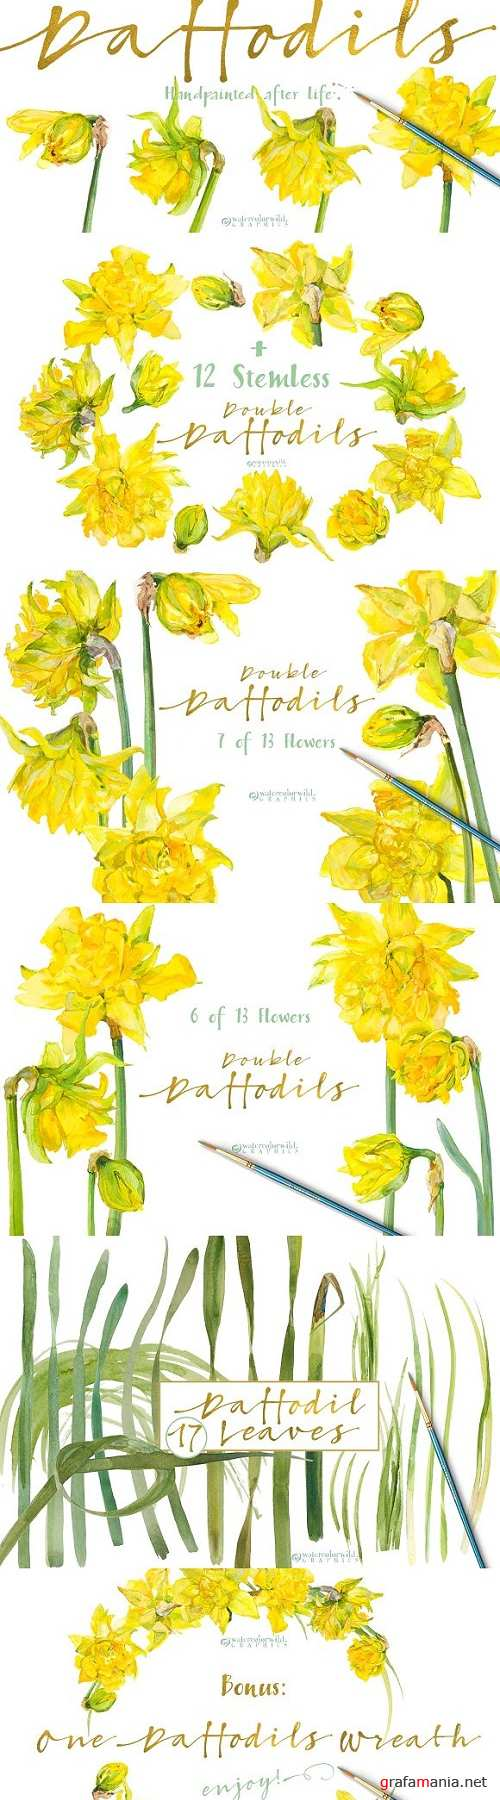 Double Daffodils - 1340329